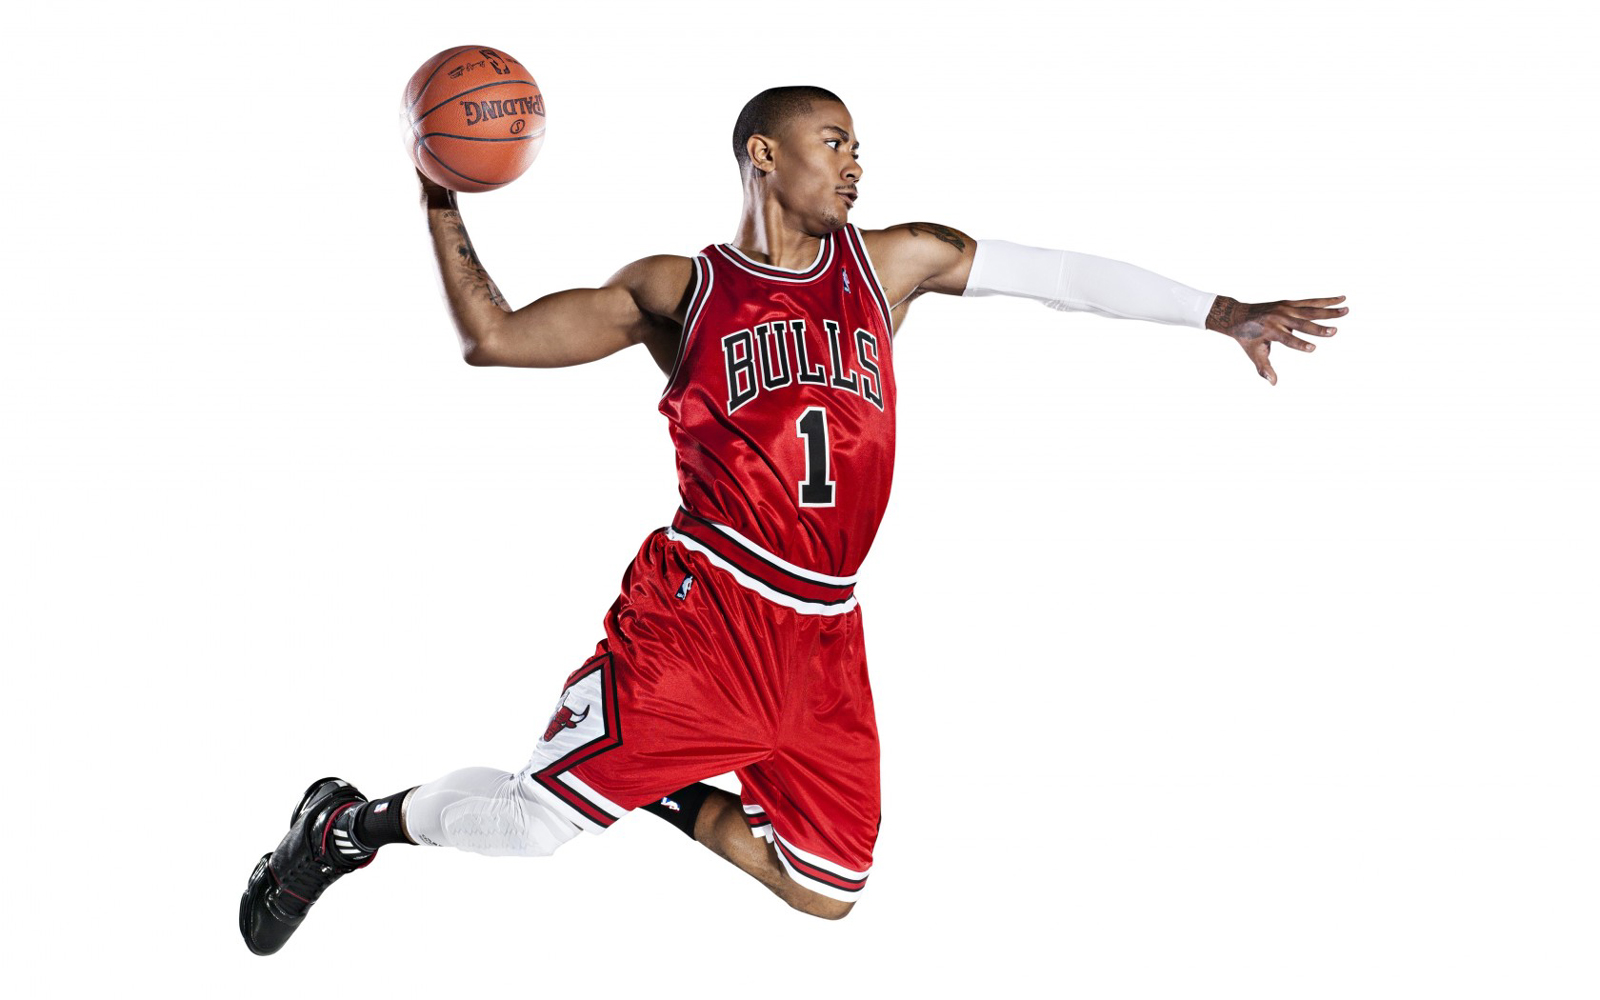 Derrick Rose 2013 Chicago Bulls NBA USA Hd Desktop Wallpaper 1600x1000